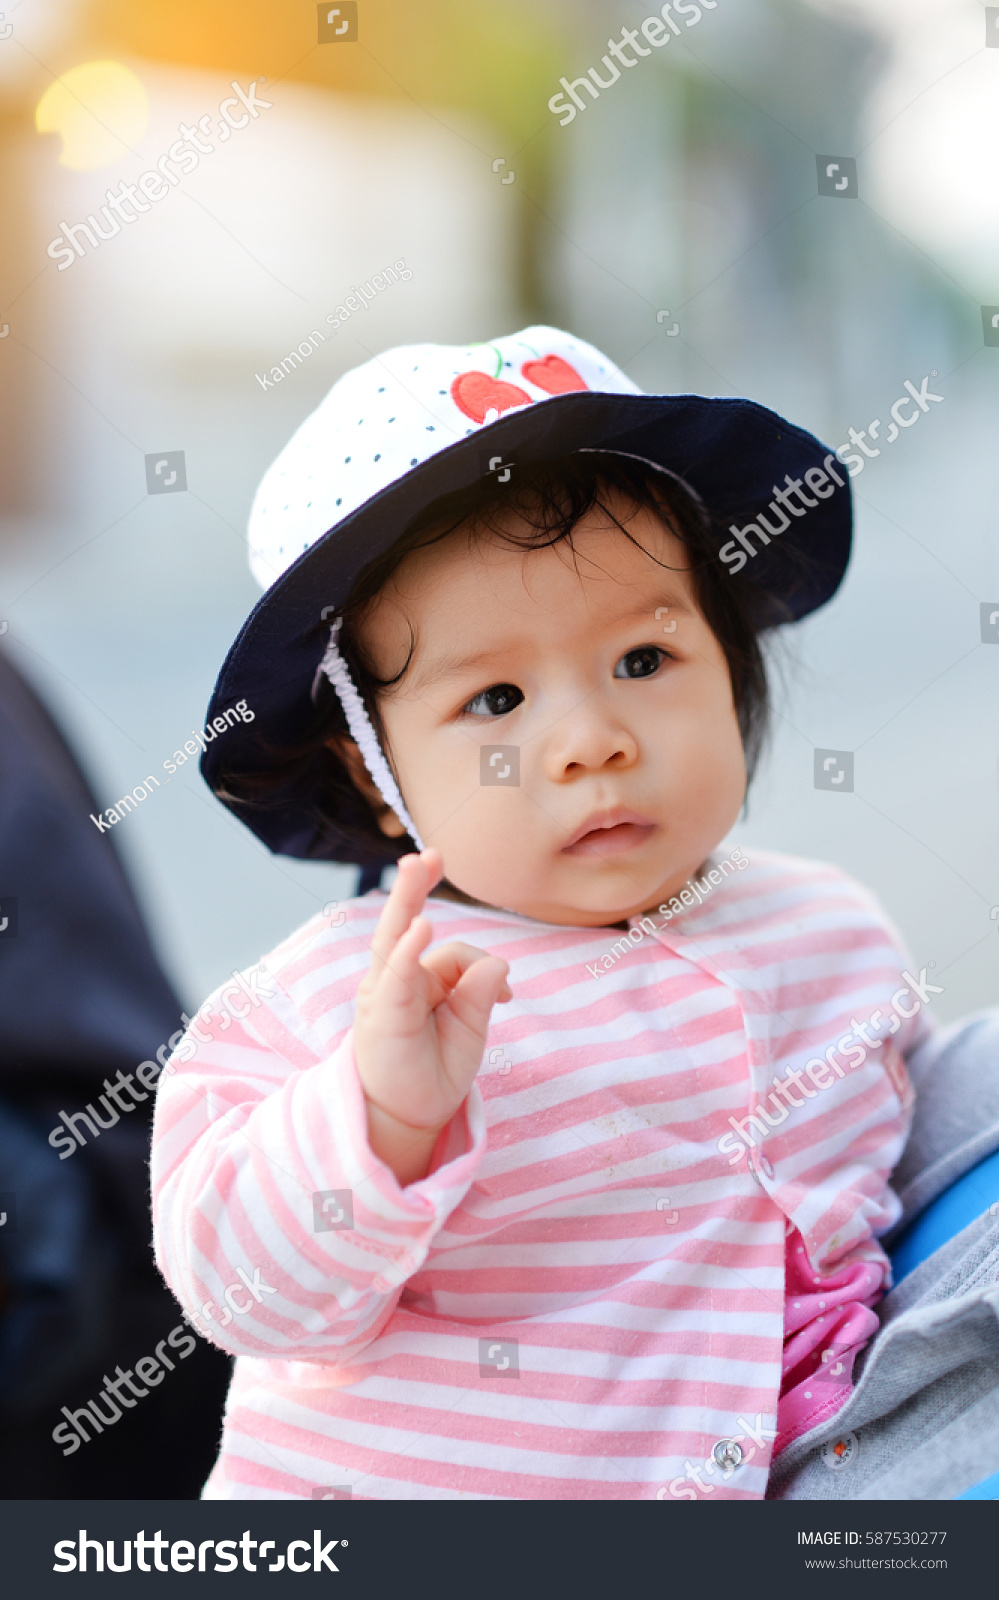 sweet beautiful baby girl red baby stock photo (safe to use